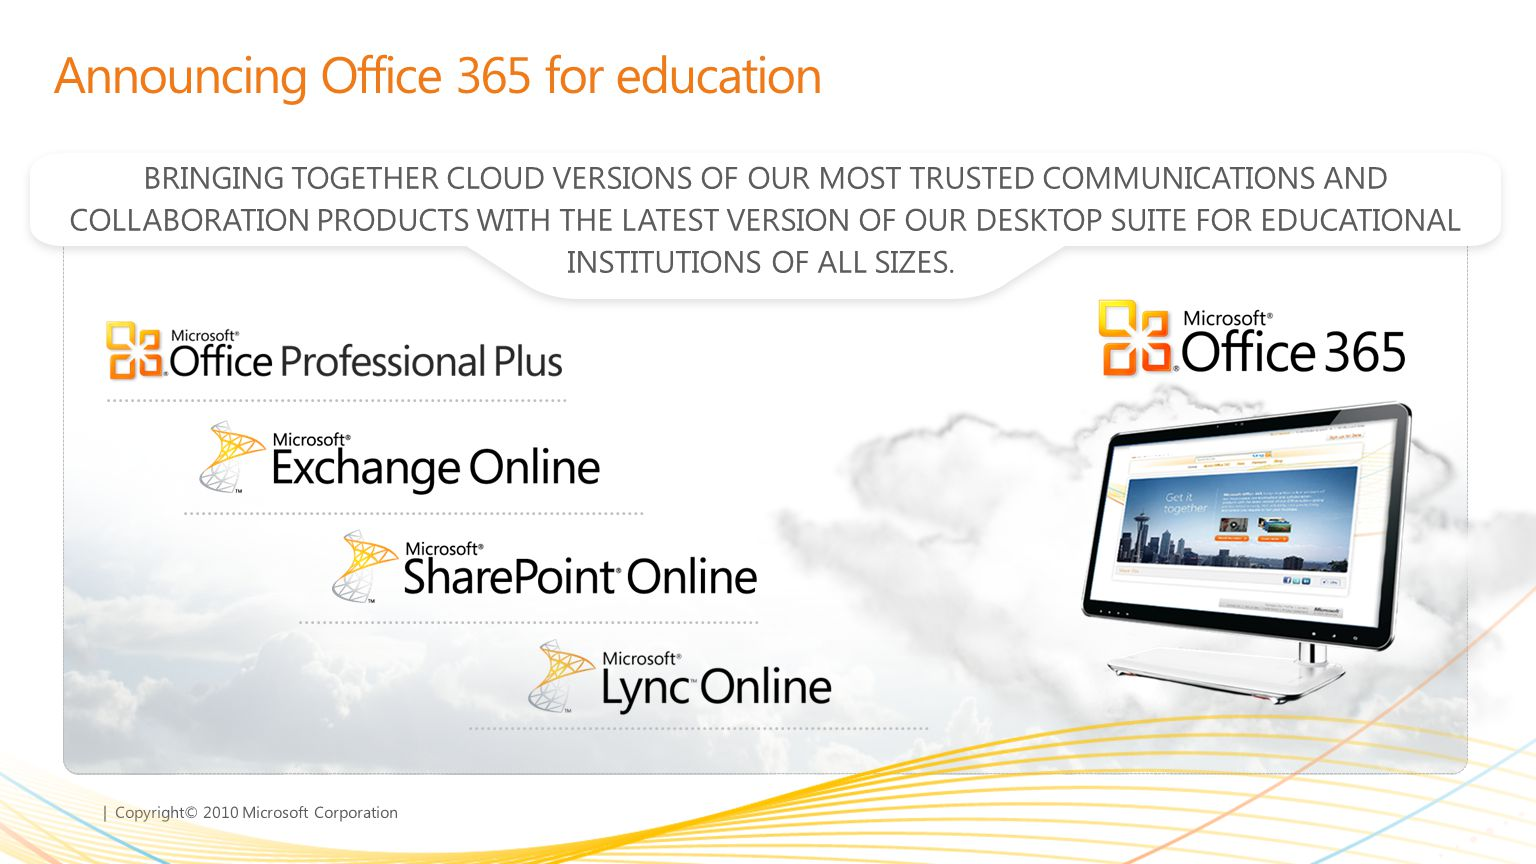 Announcing Office 365 for education